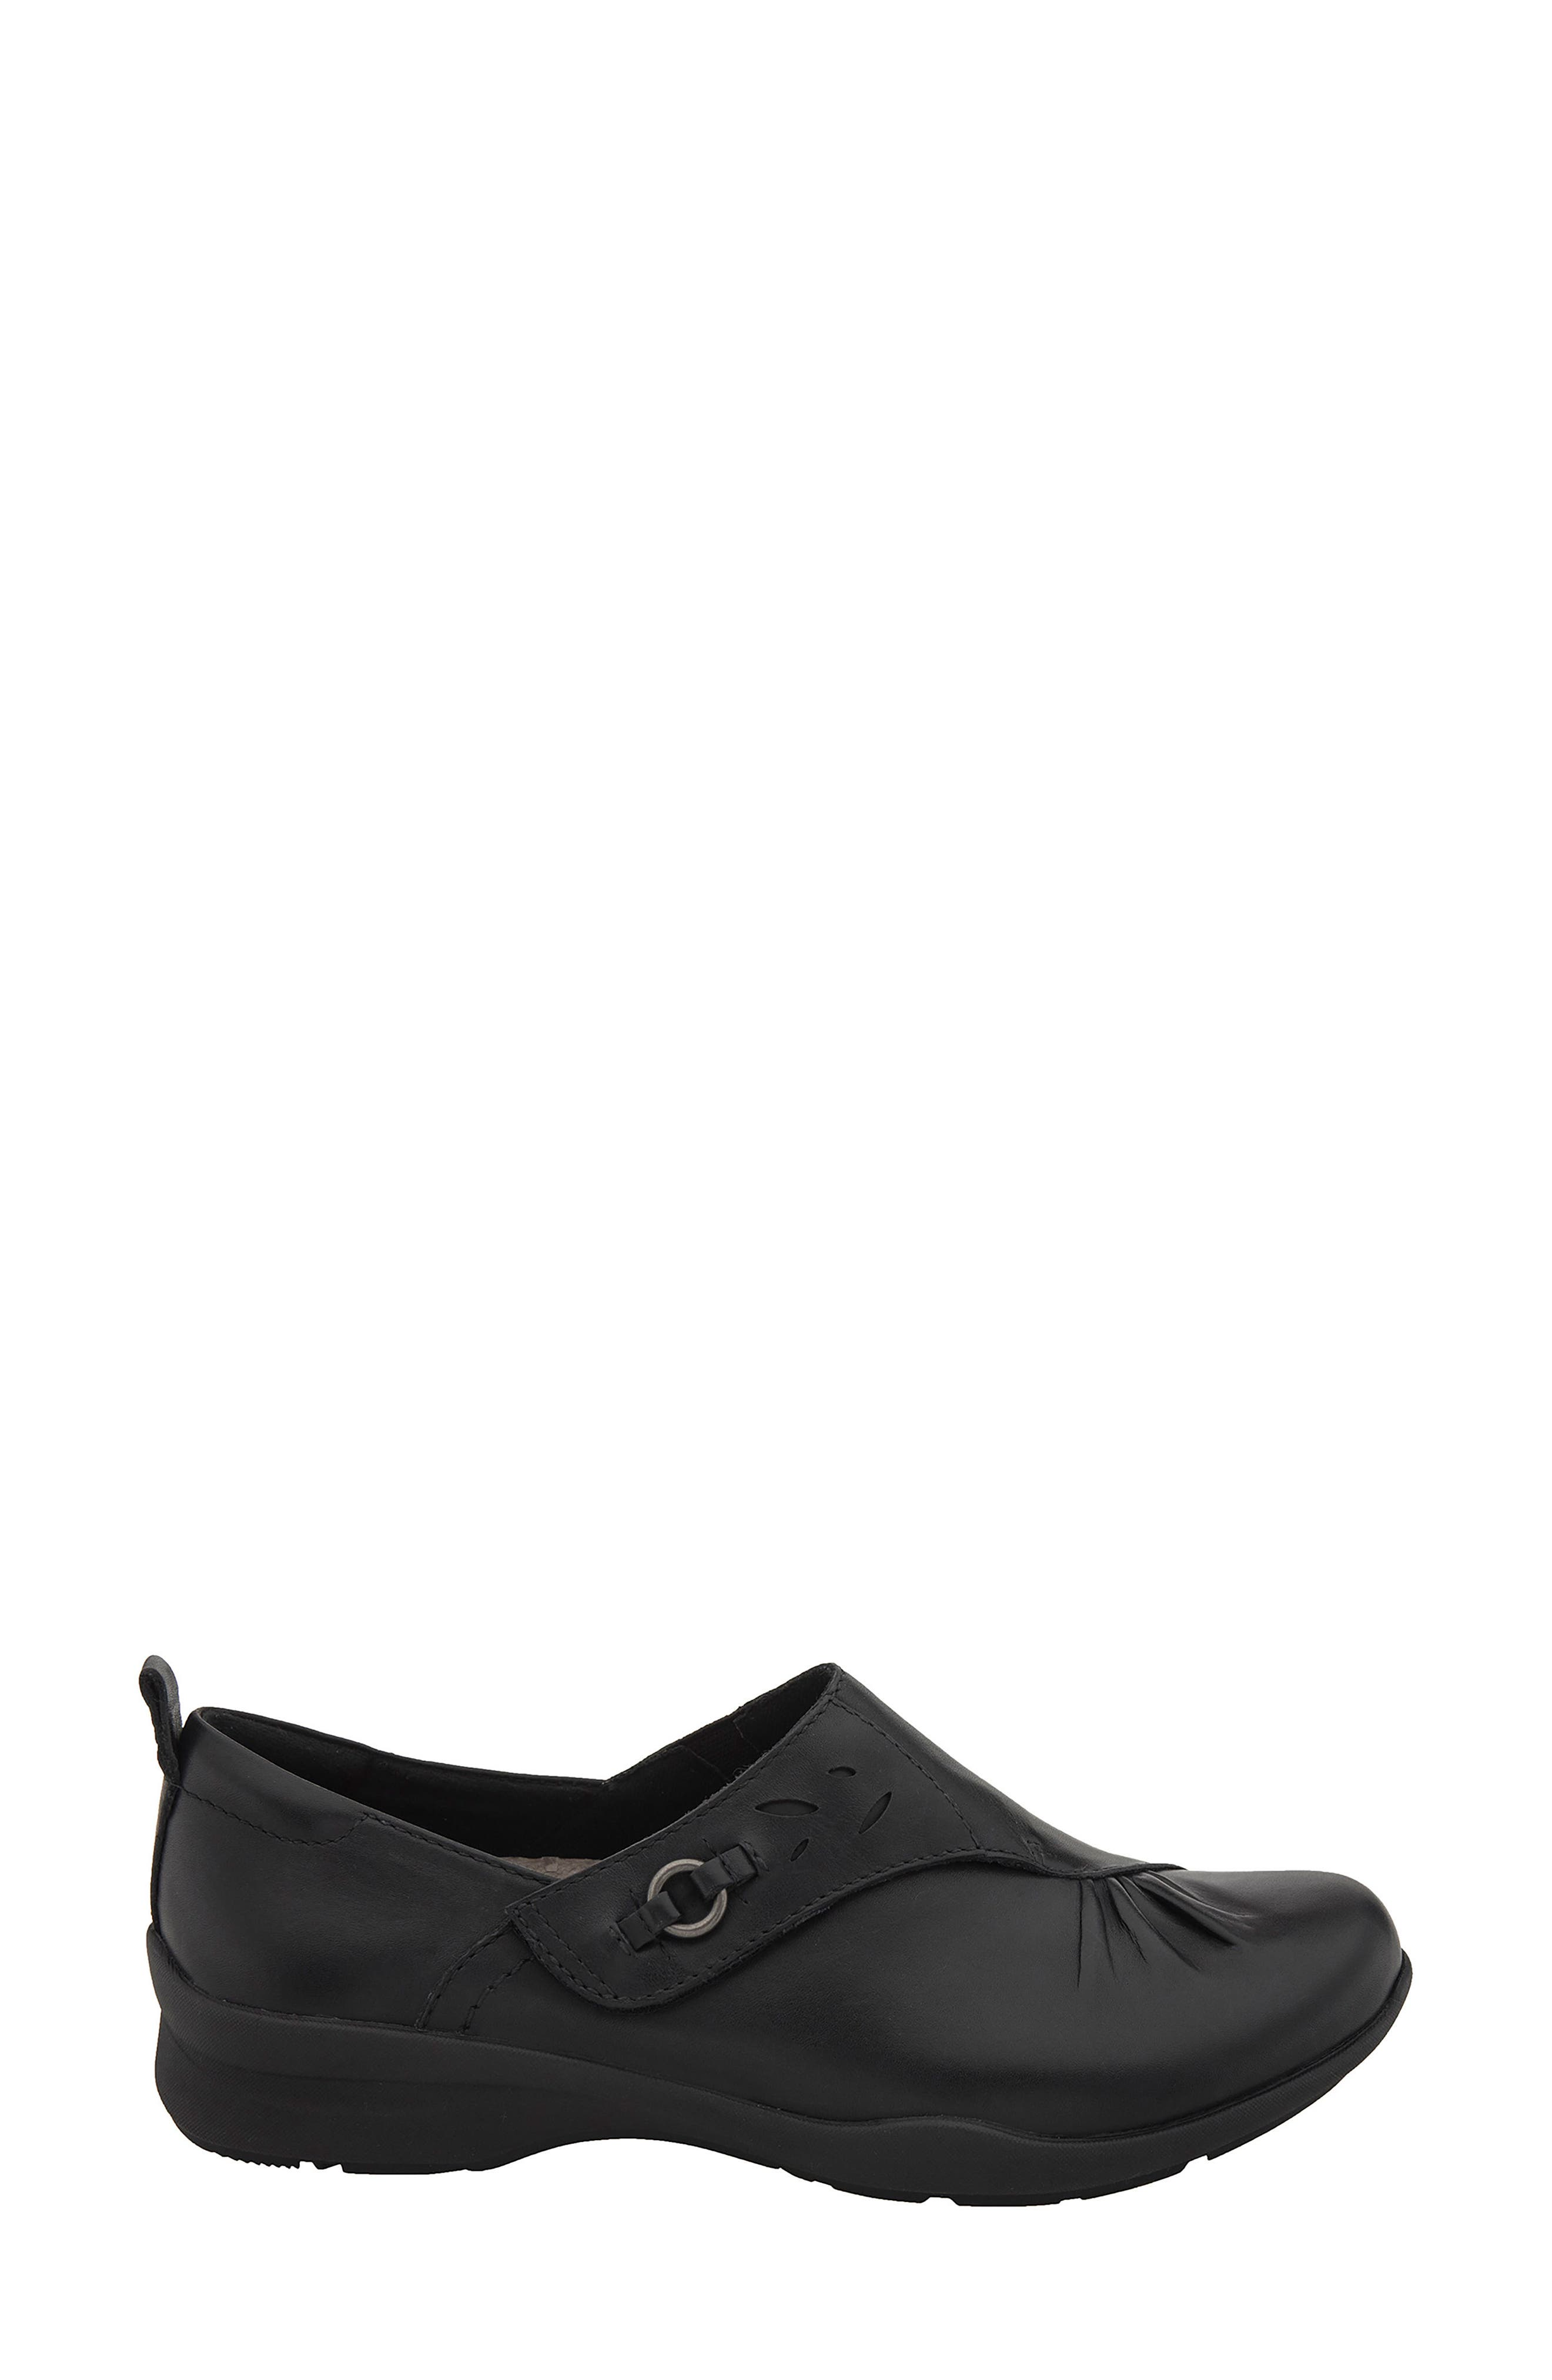 Amity Loafer,                             Alternate thumbnail 3, color,                             012